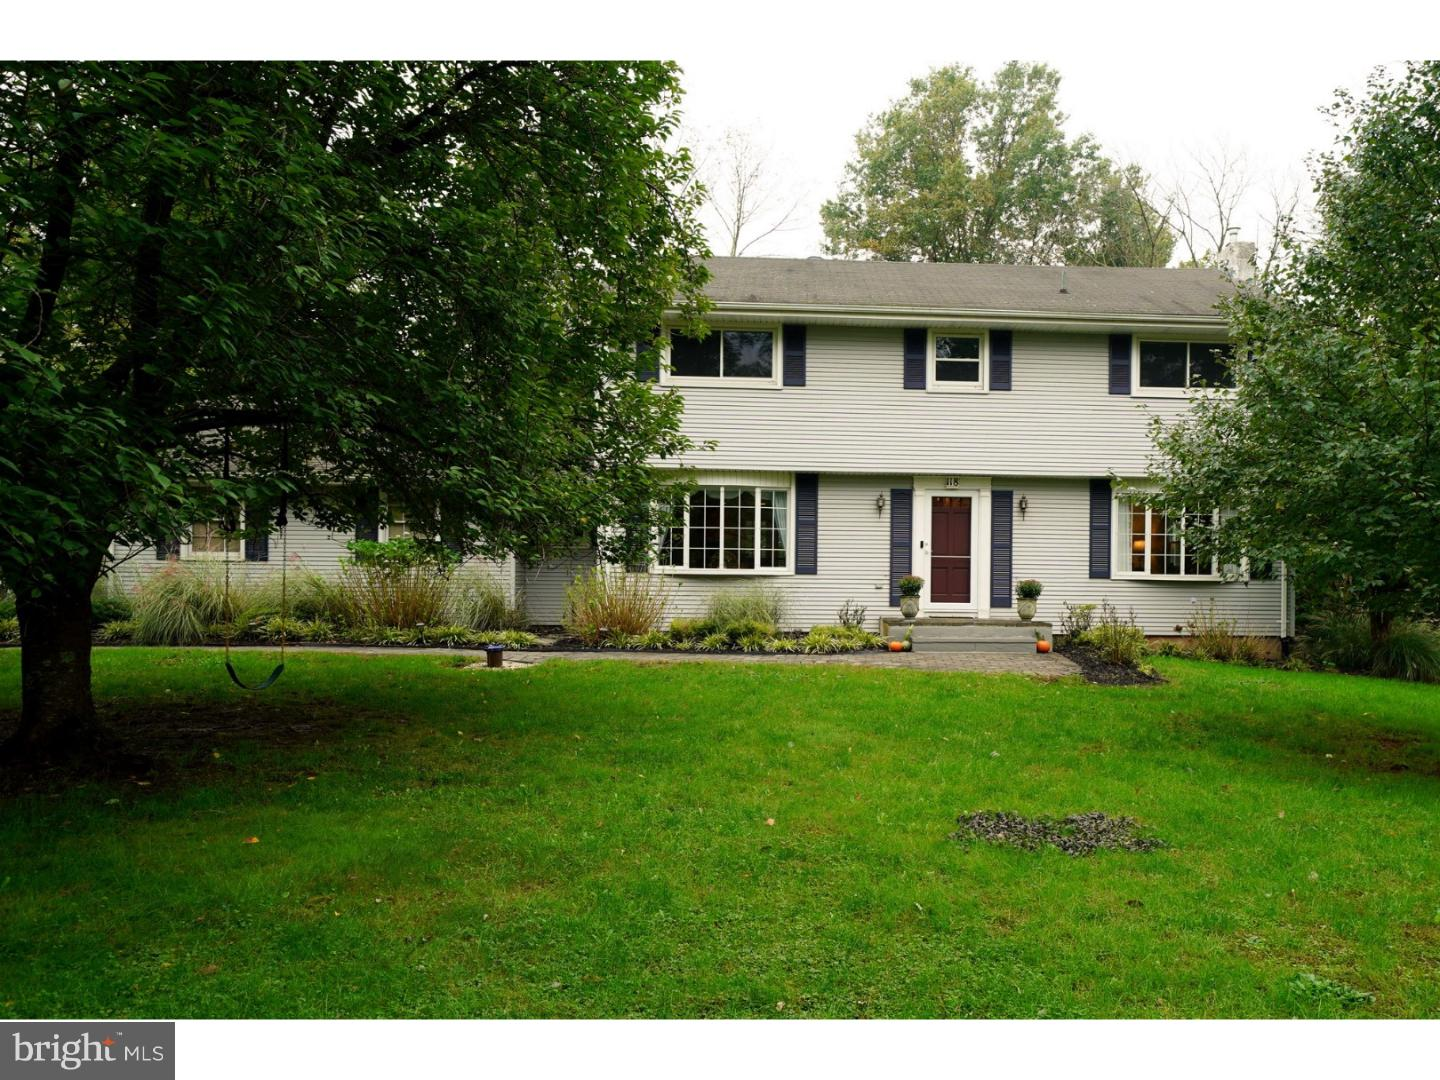 Property for Sale at 118 CHERRY BROOK Drive Princeton, New Jersey 08540 United States